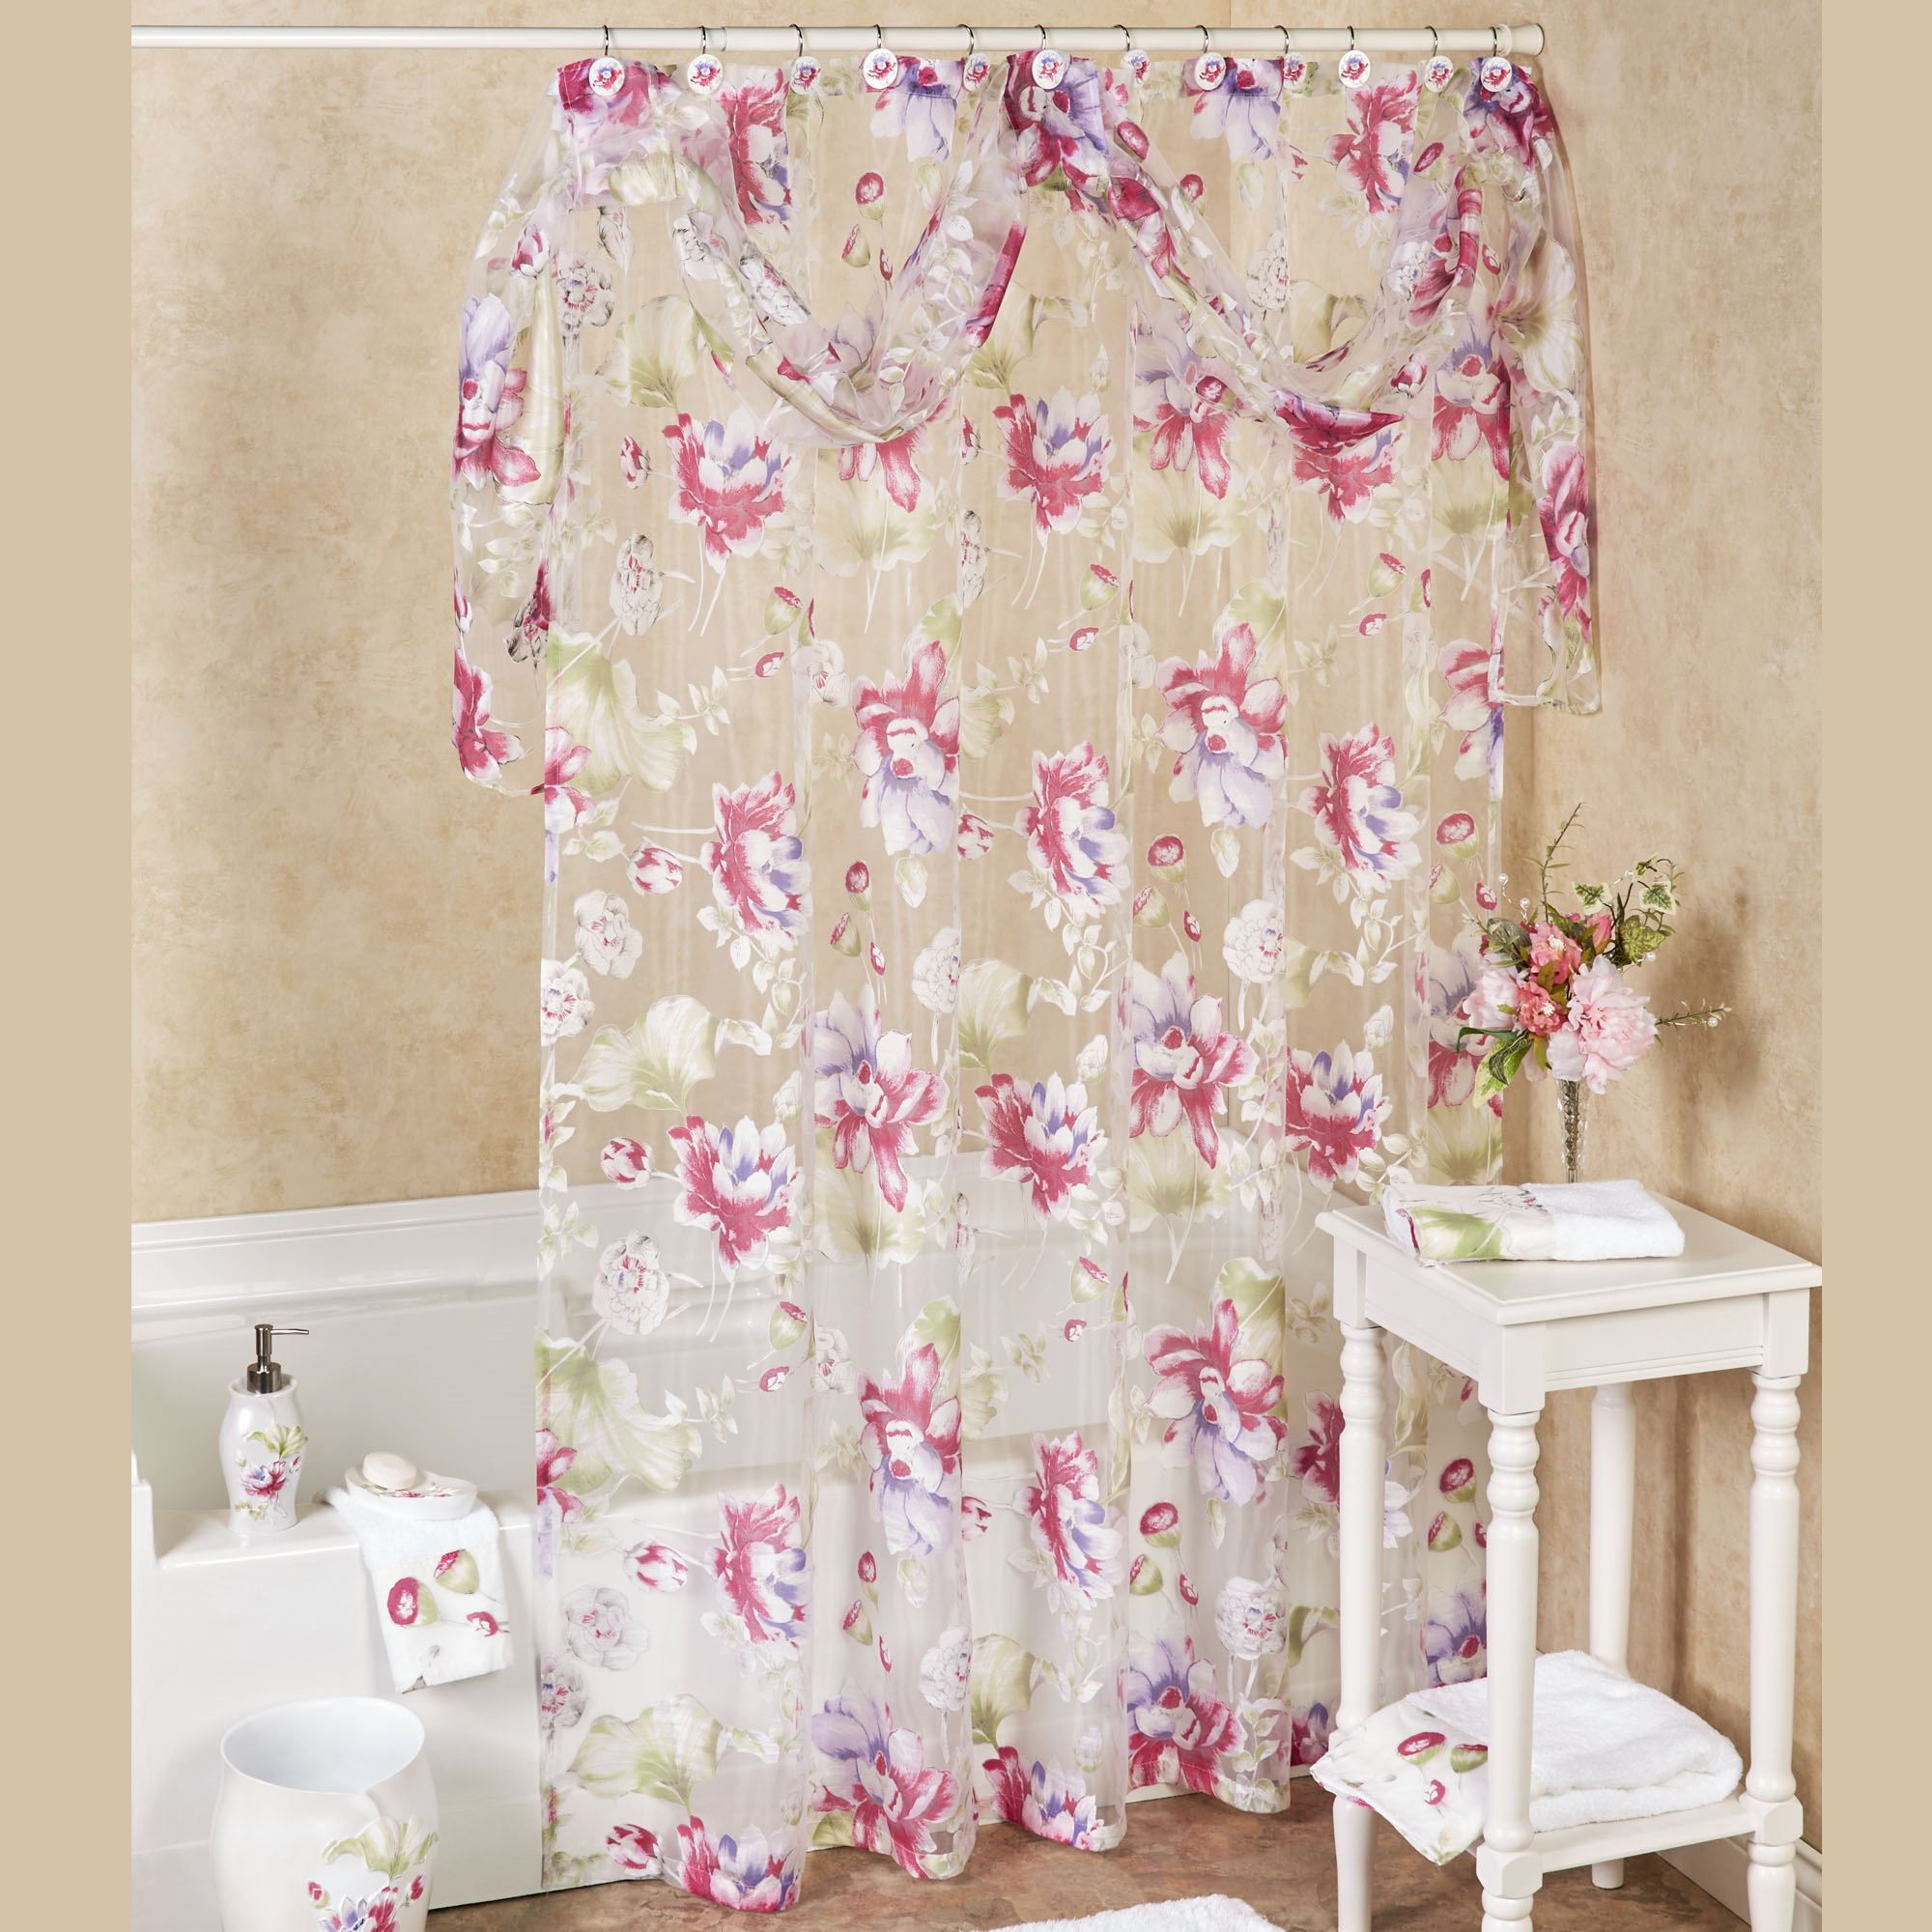 Fl Haven Sheer Shower Curtain White 72 X